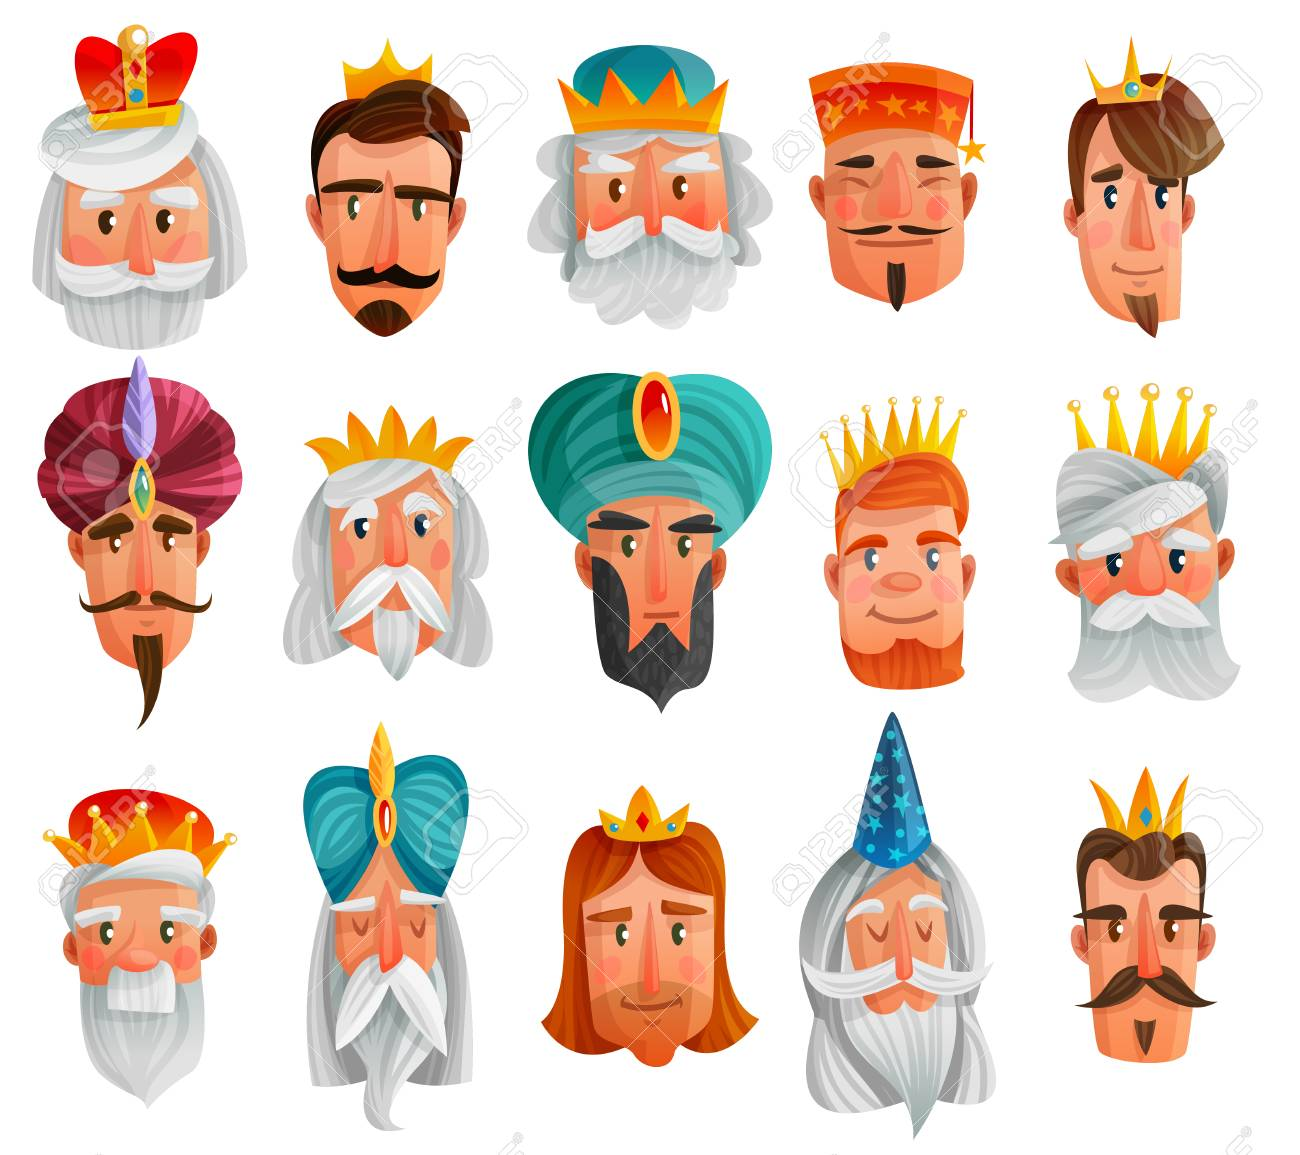 Royal Characters Cartoon Set With Faces Of European And Asian Royalty Free Cliparts Vectors And Stock Illustration Image 91000536